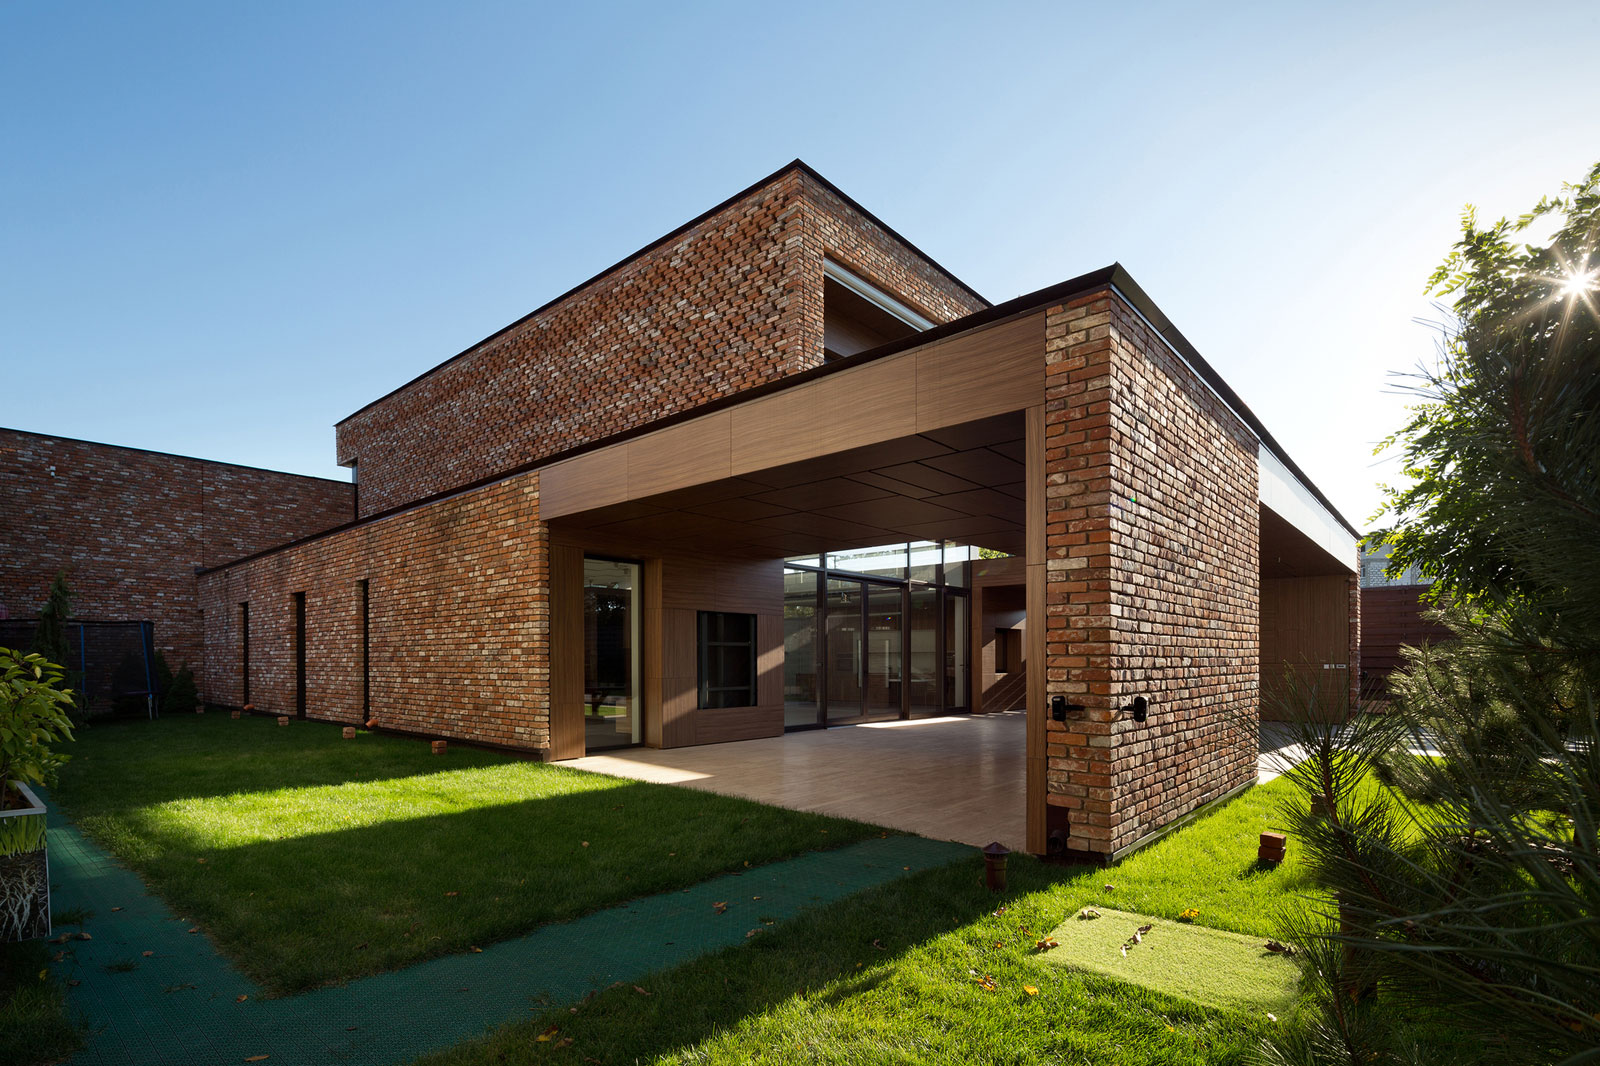 Drozdov partners build a private home out of recycled bricks for Brick home construction